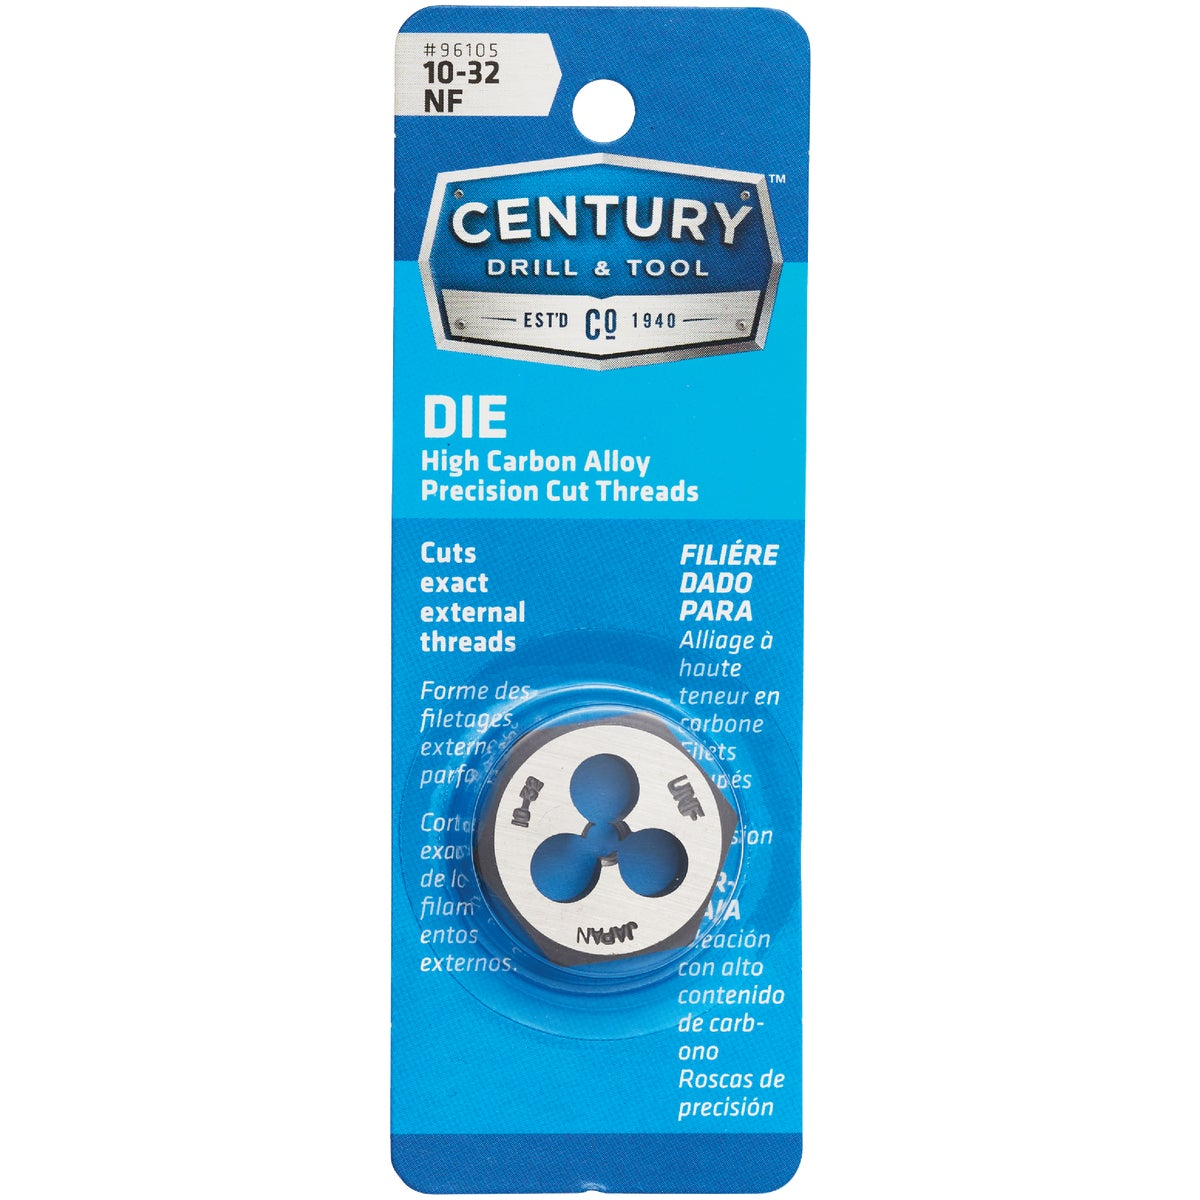 10X32 NF HEX DIE - 9331ZR by Irwin Industr Tool